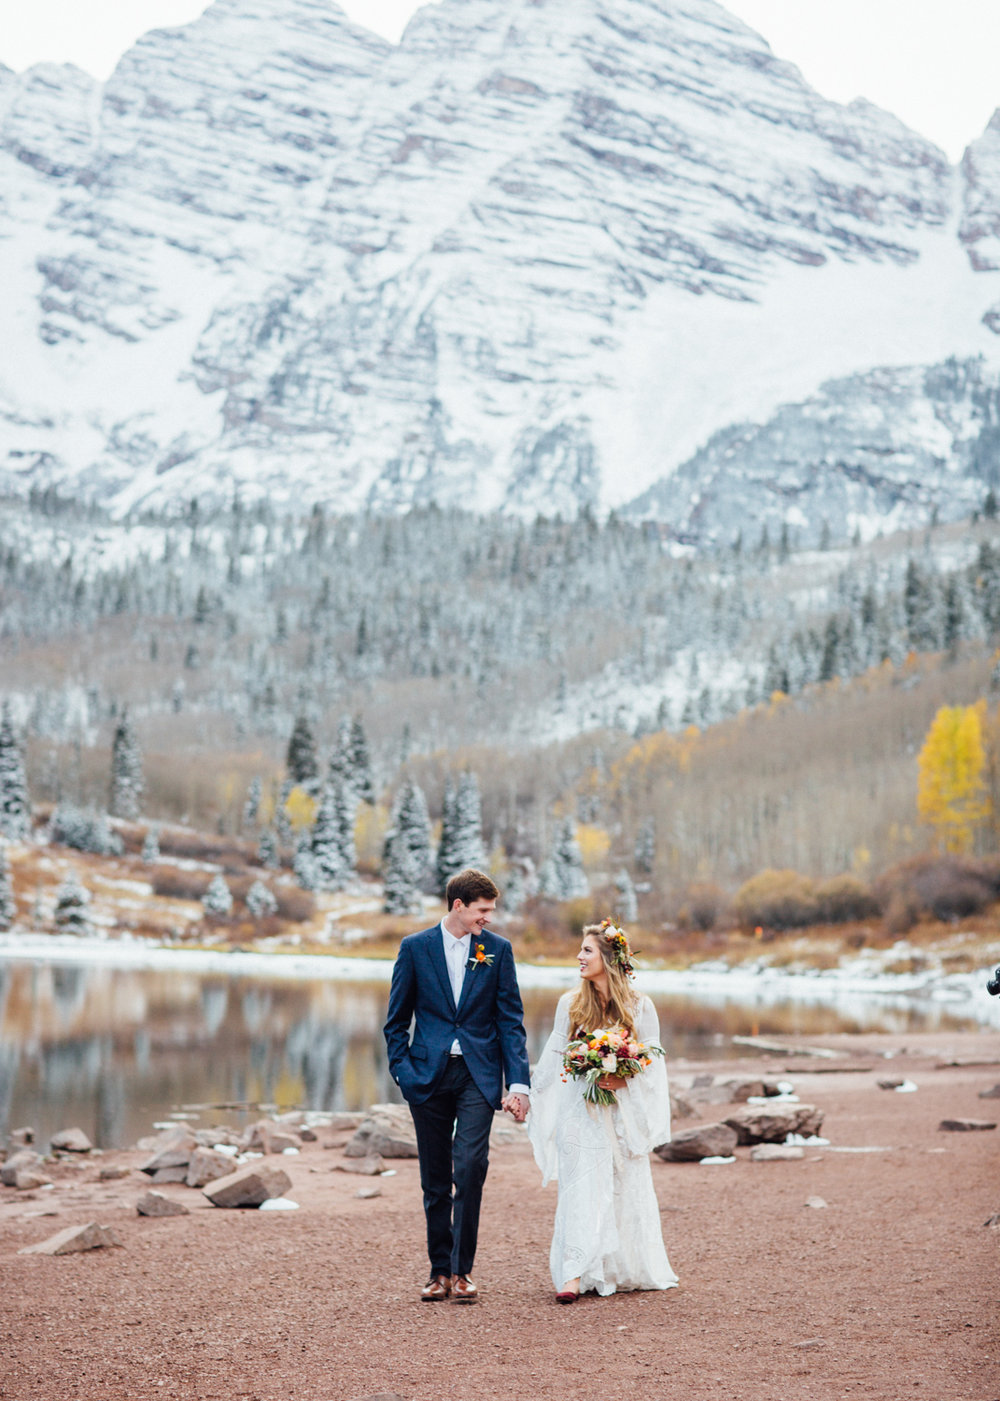 Cat Mayer | Late Autumn Elopement Wedding at Maroon Bells in Aspen, Colorado